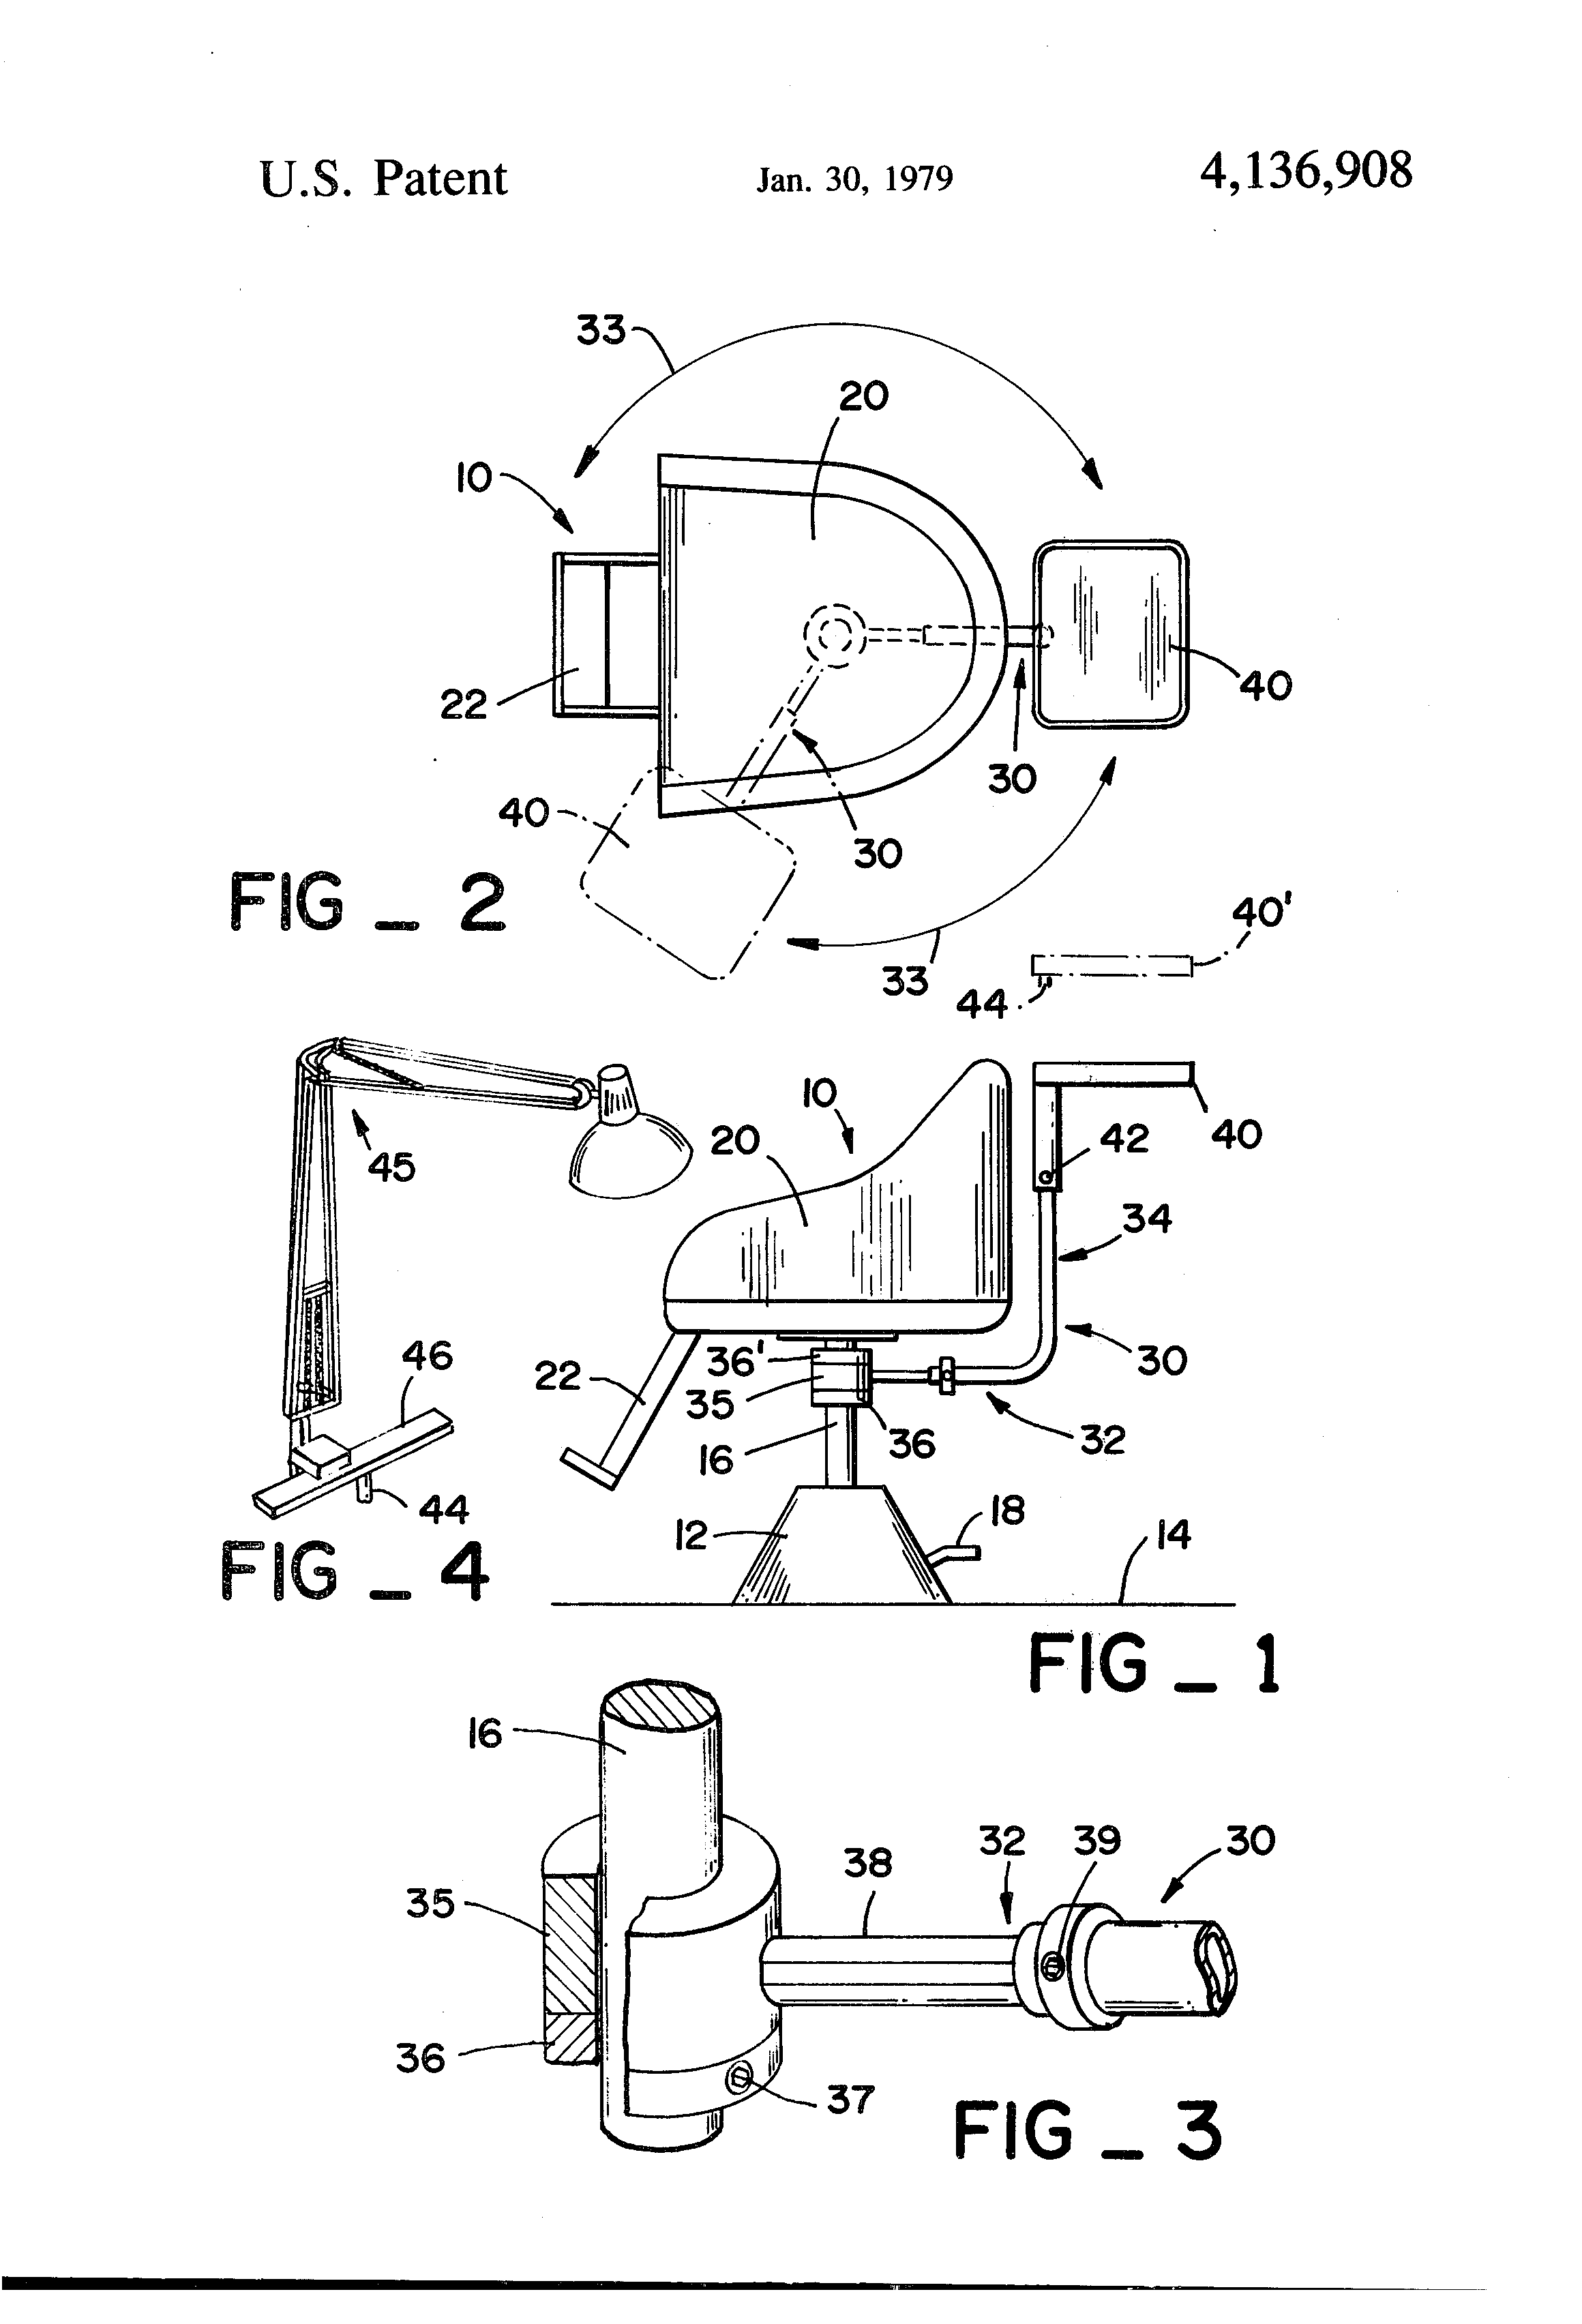 Hair cutting chair dimensions - Patent Drawing